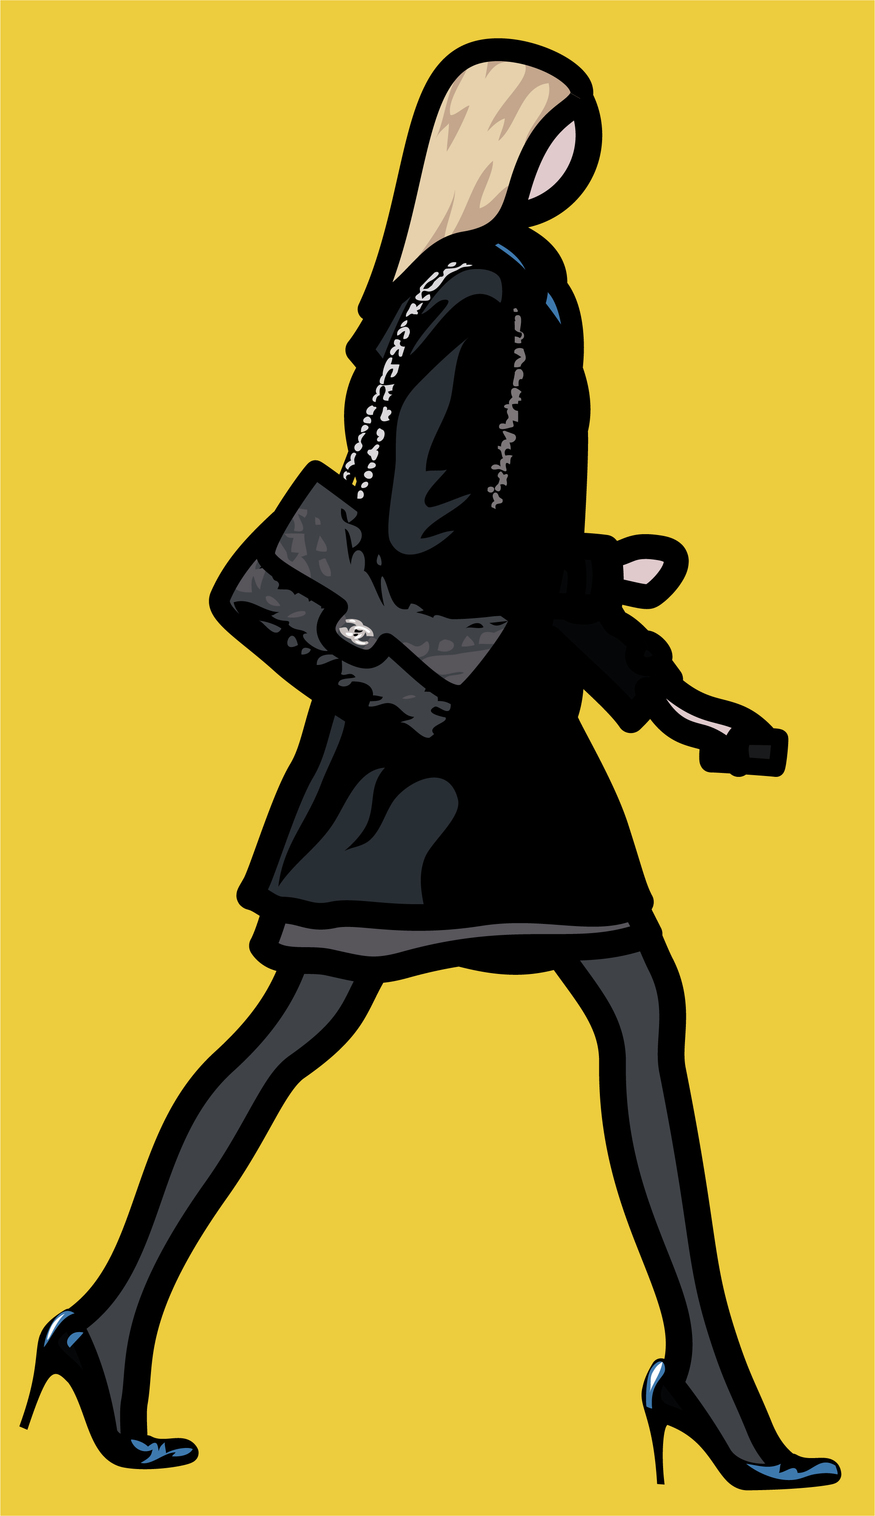 Julian Opie Woman in high heels with telephone. © Julian Opie and Lisson Gallery